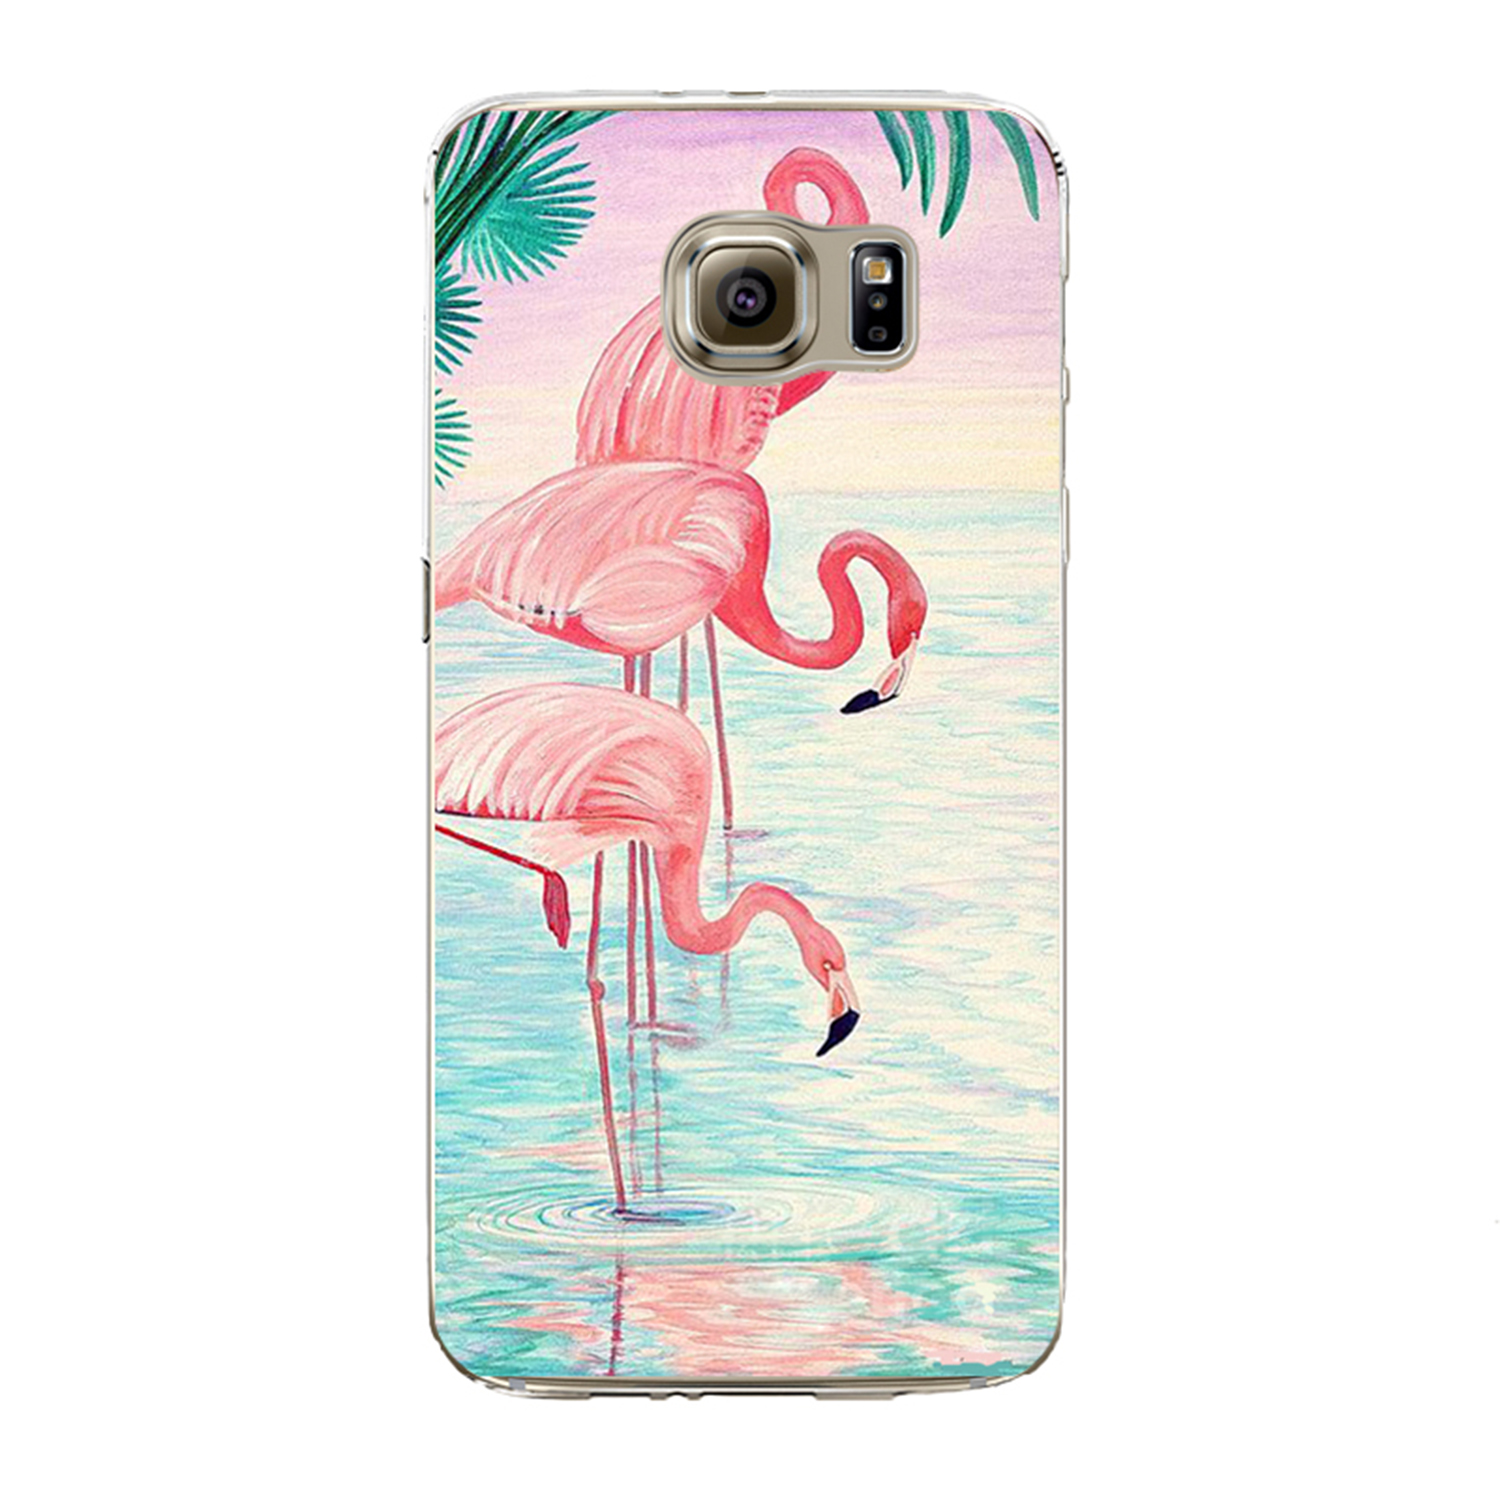 Kritzel Case Collection Galaxy S6 - Mod. 470